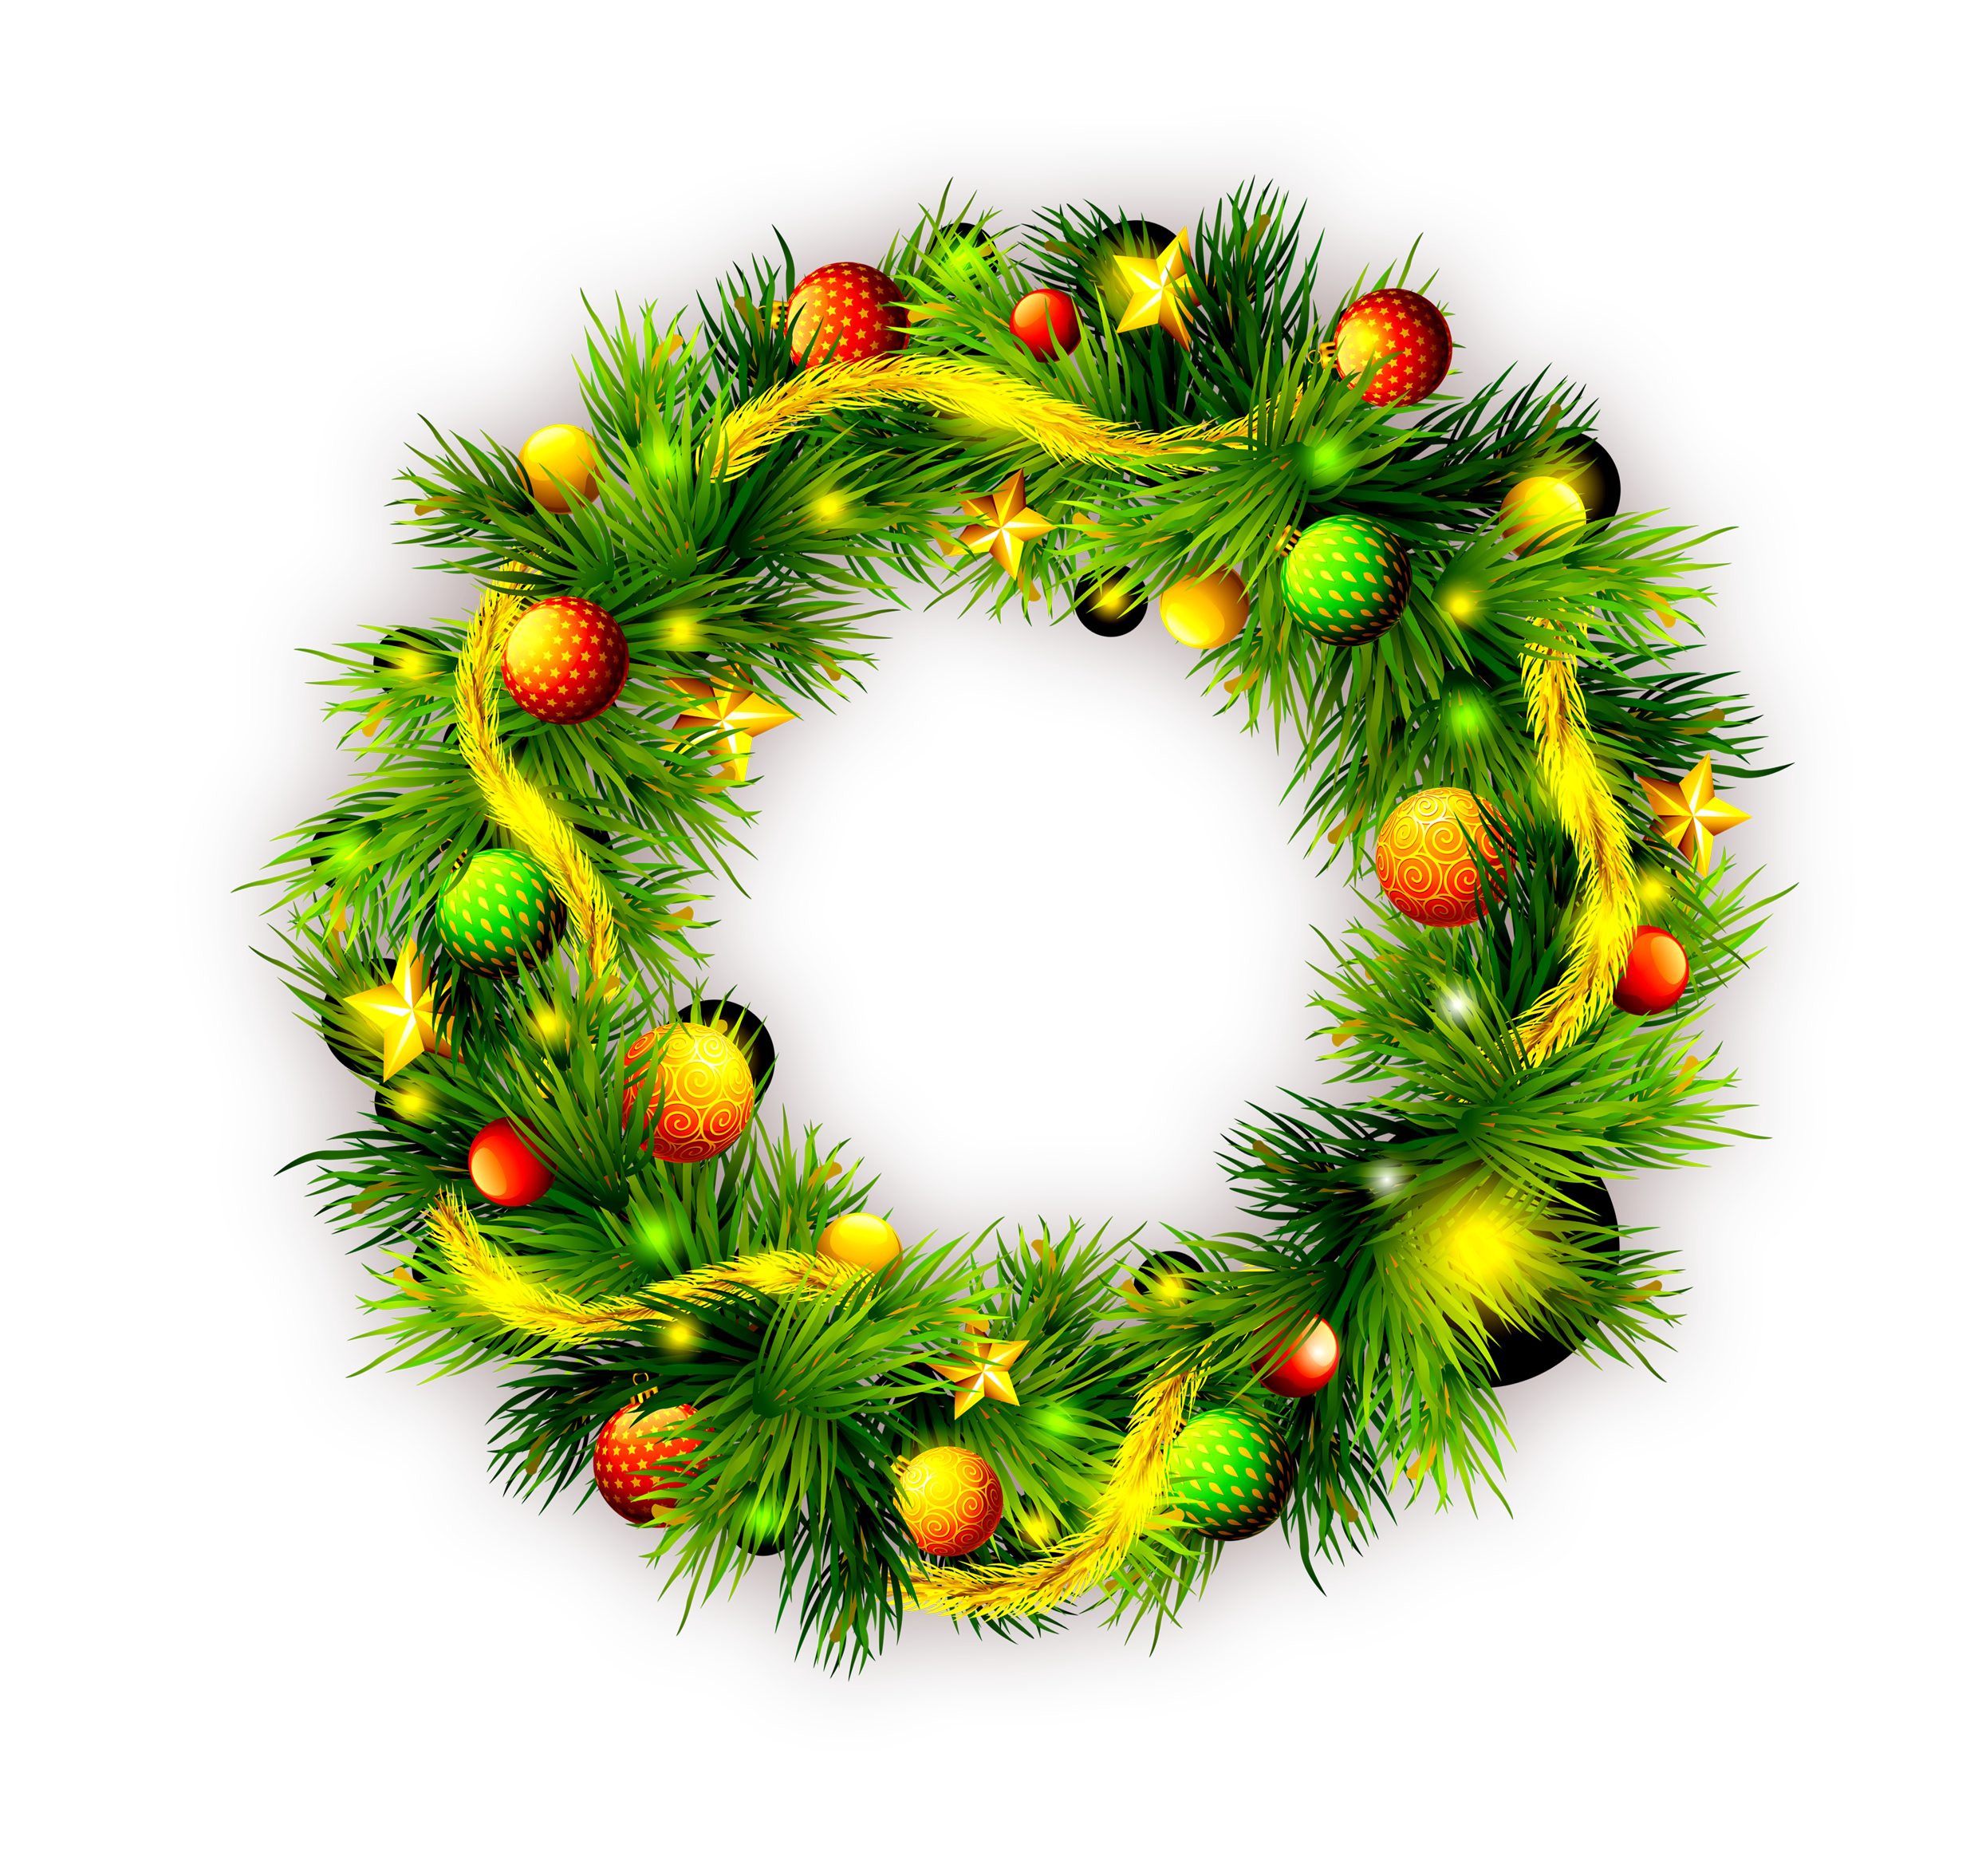 Christmas decorated pine cones png. Wreath gift garland green